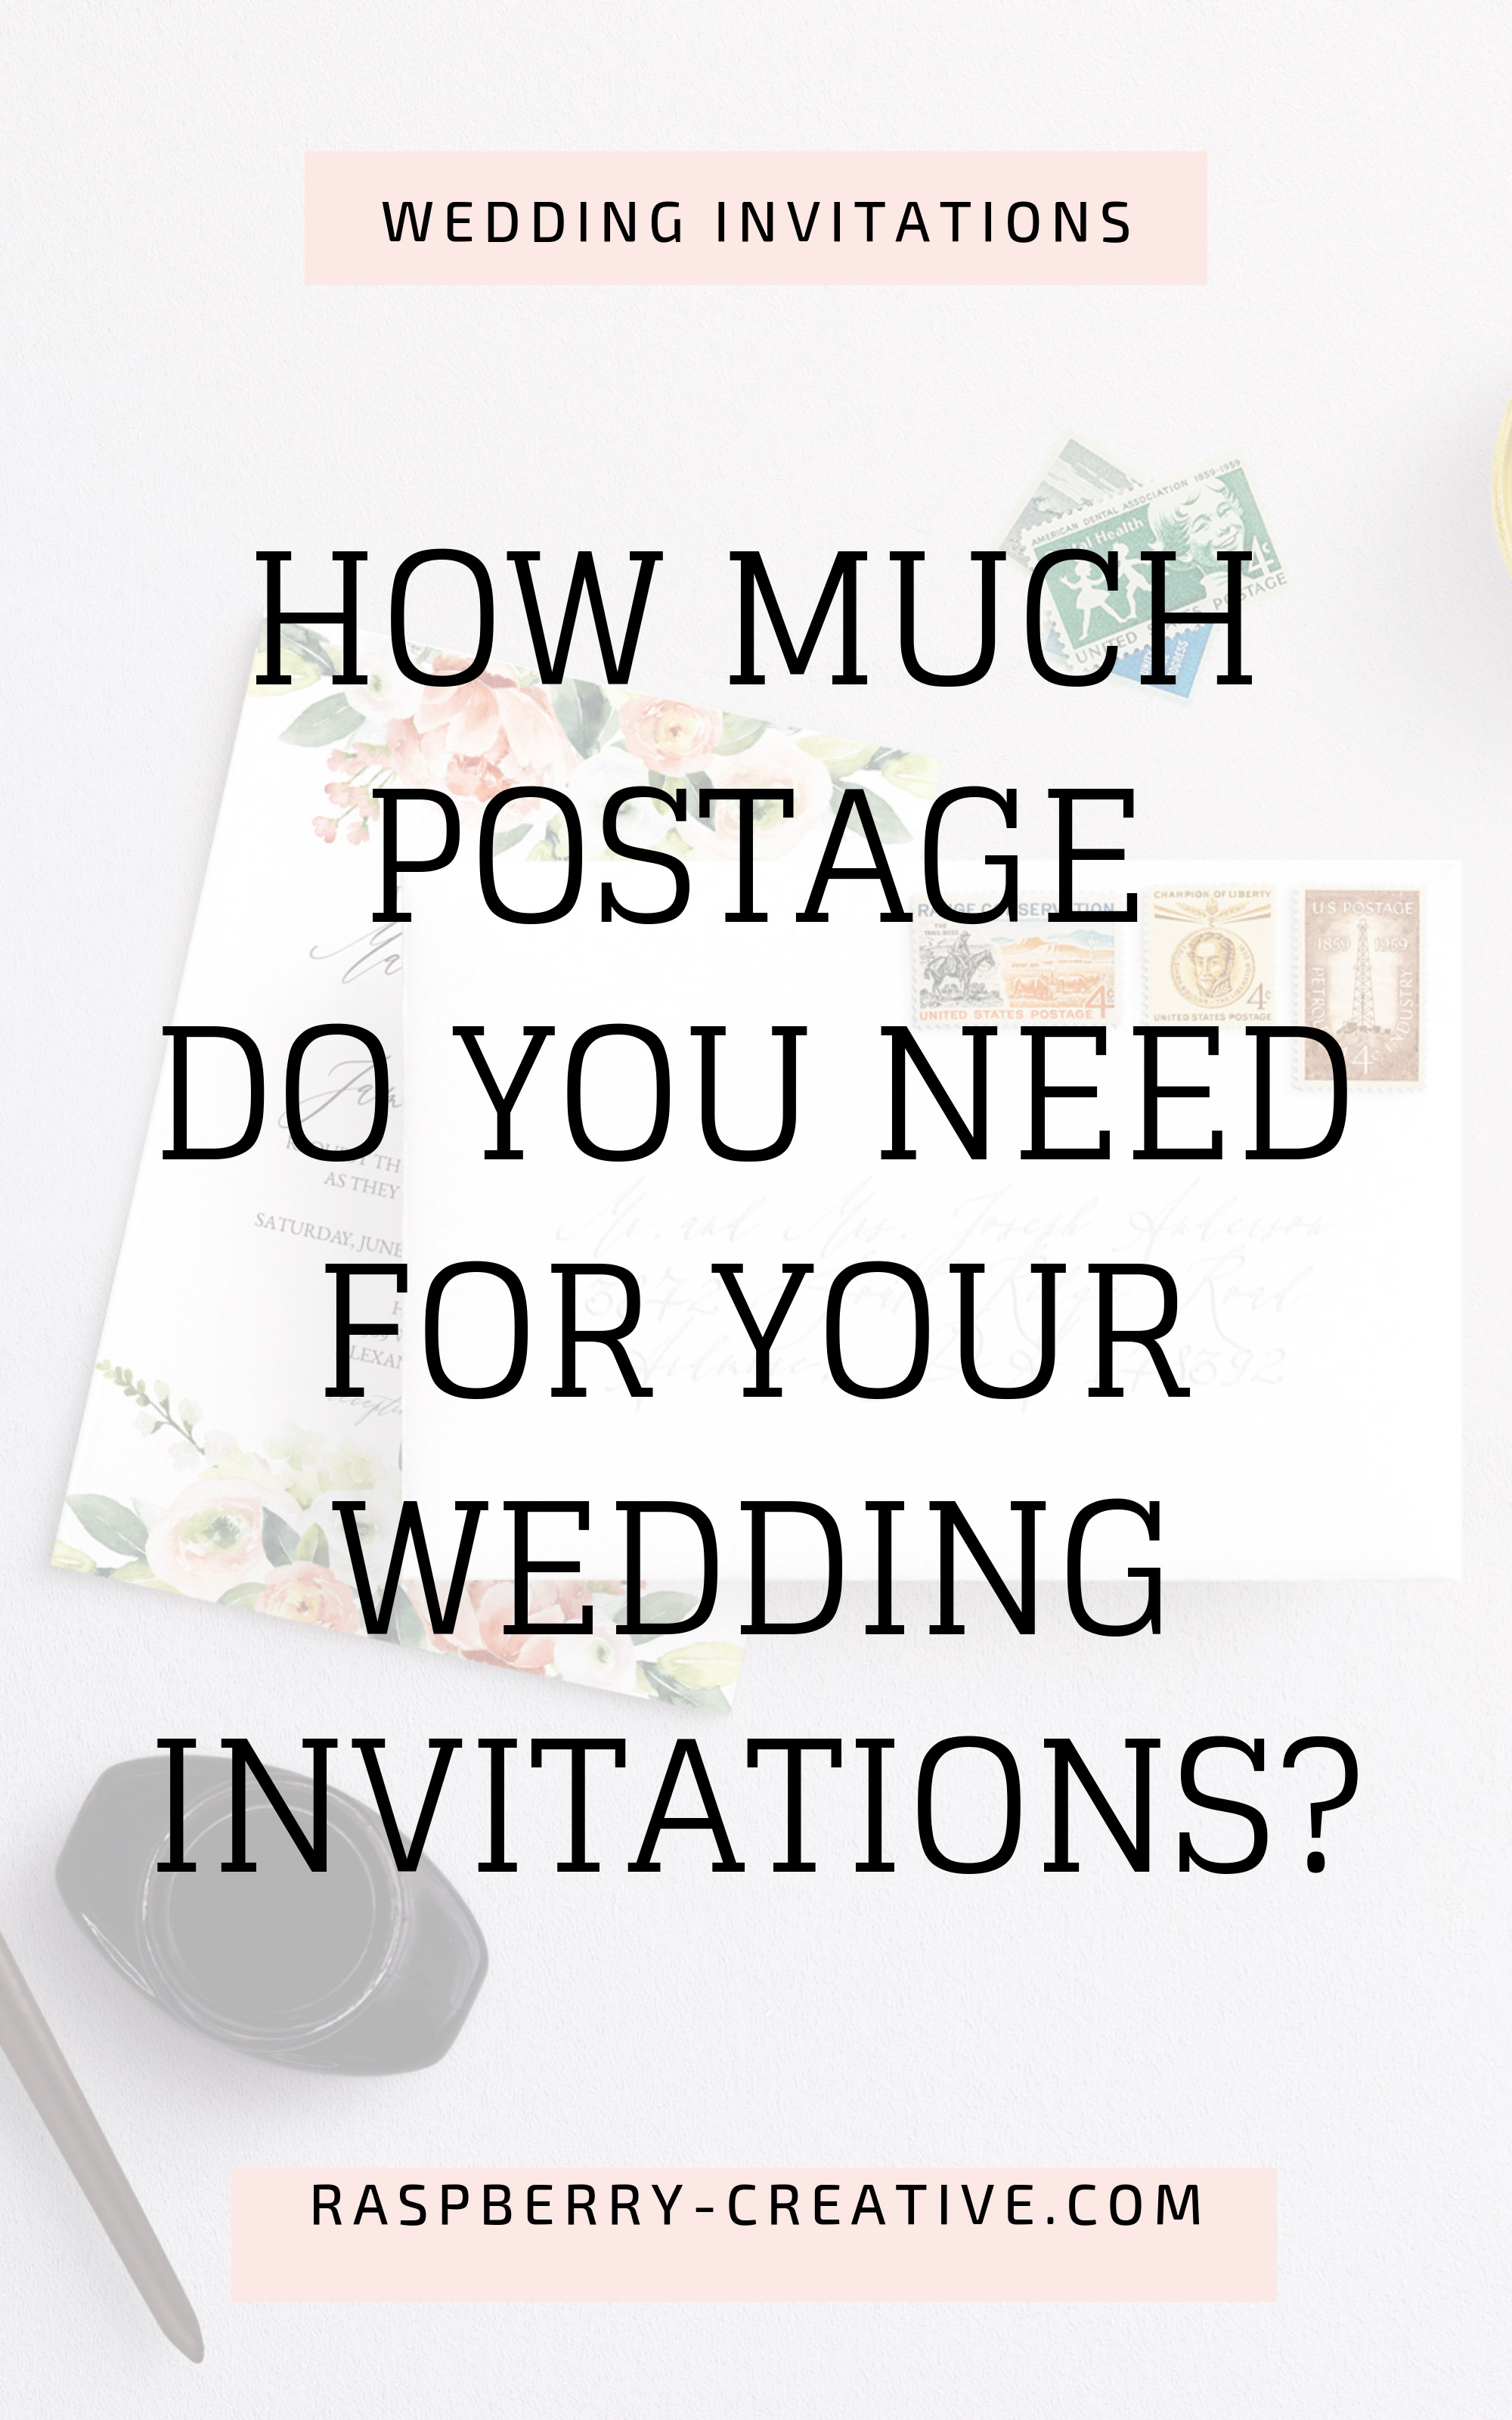 how-much-postage-do-you-need-for-your-wedding-invitations